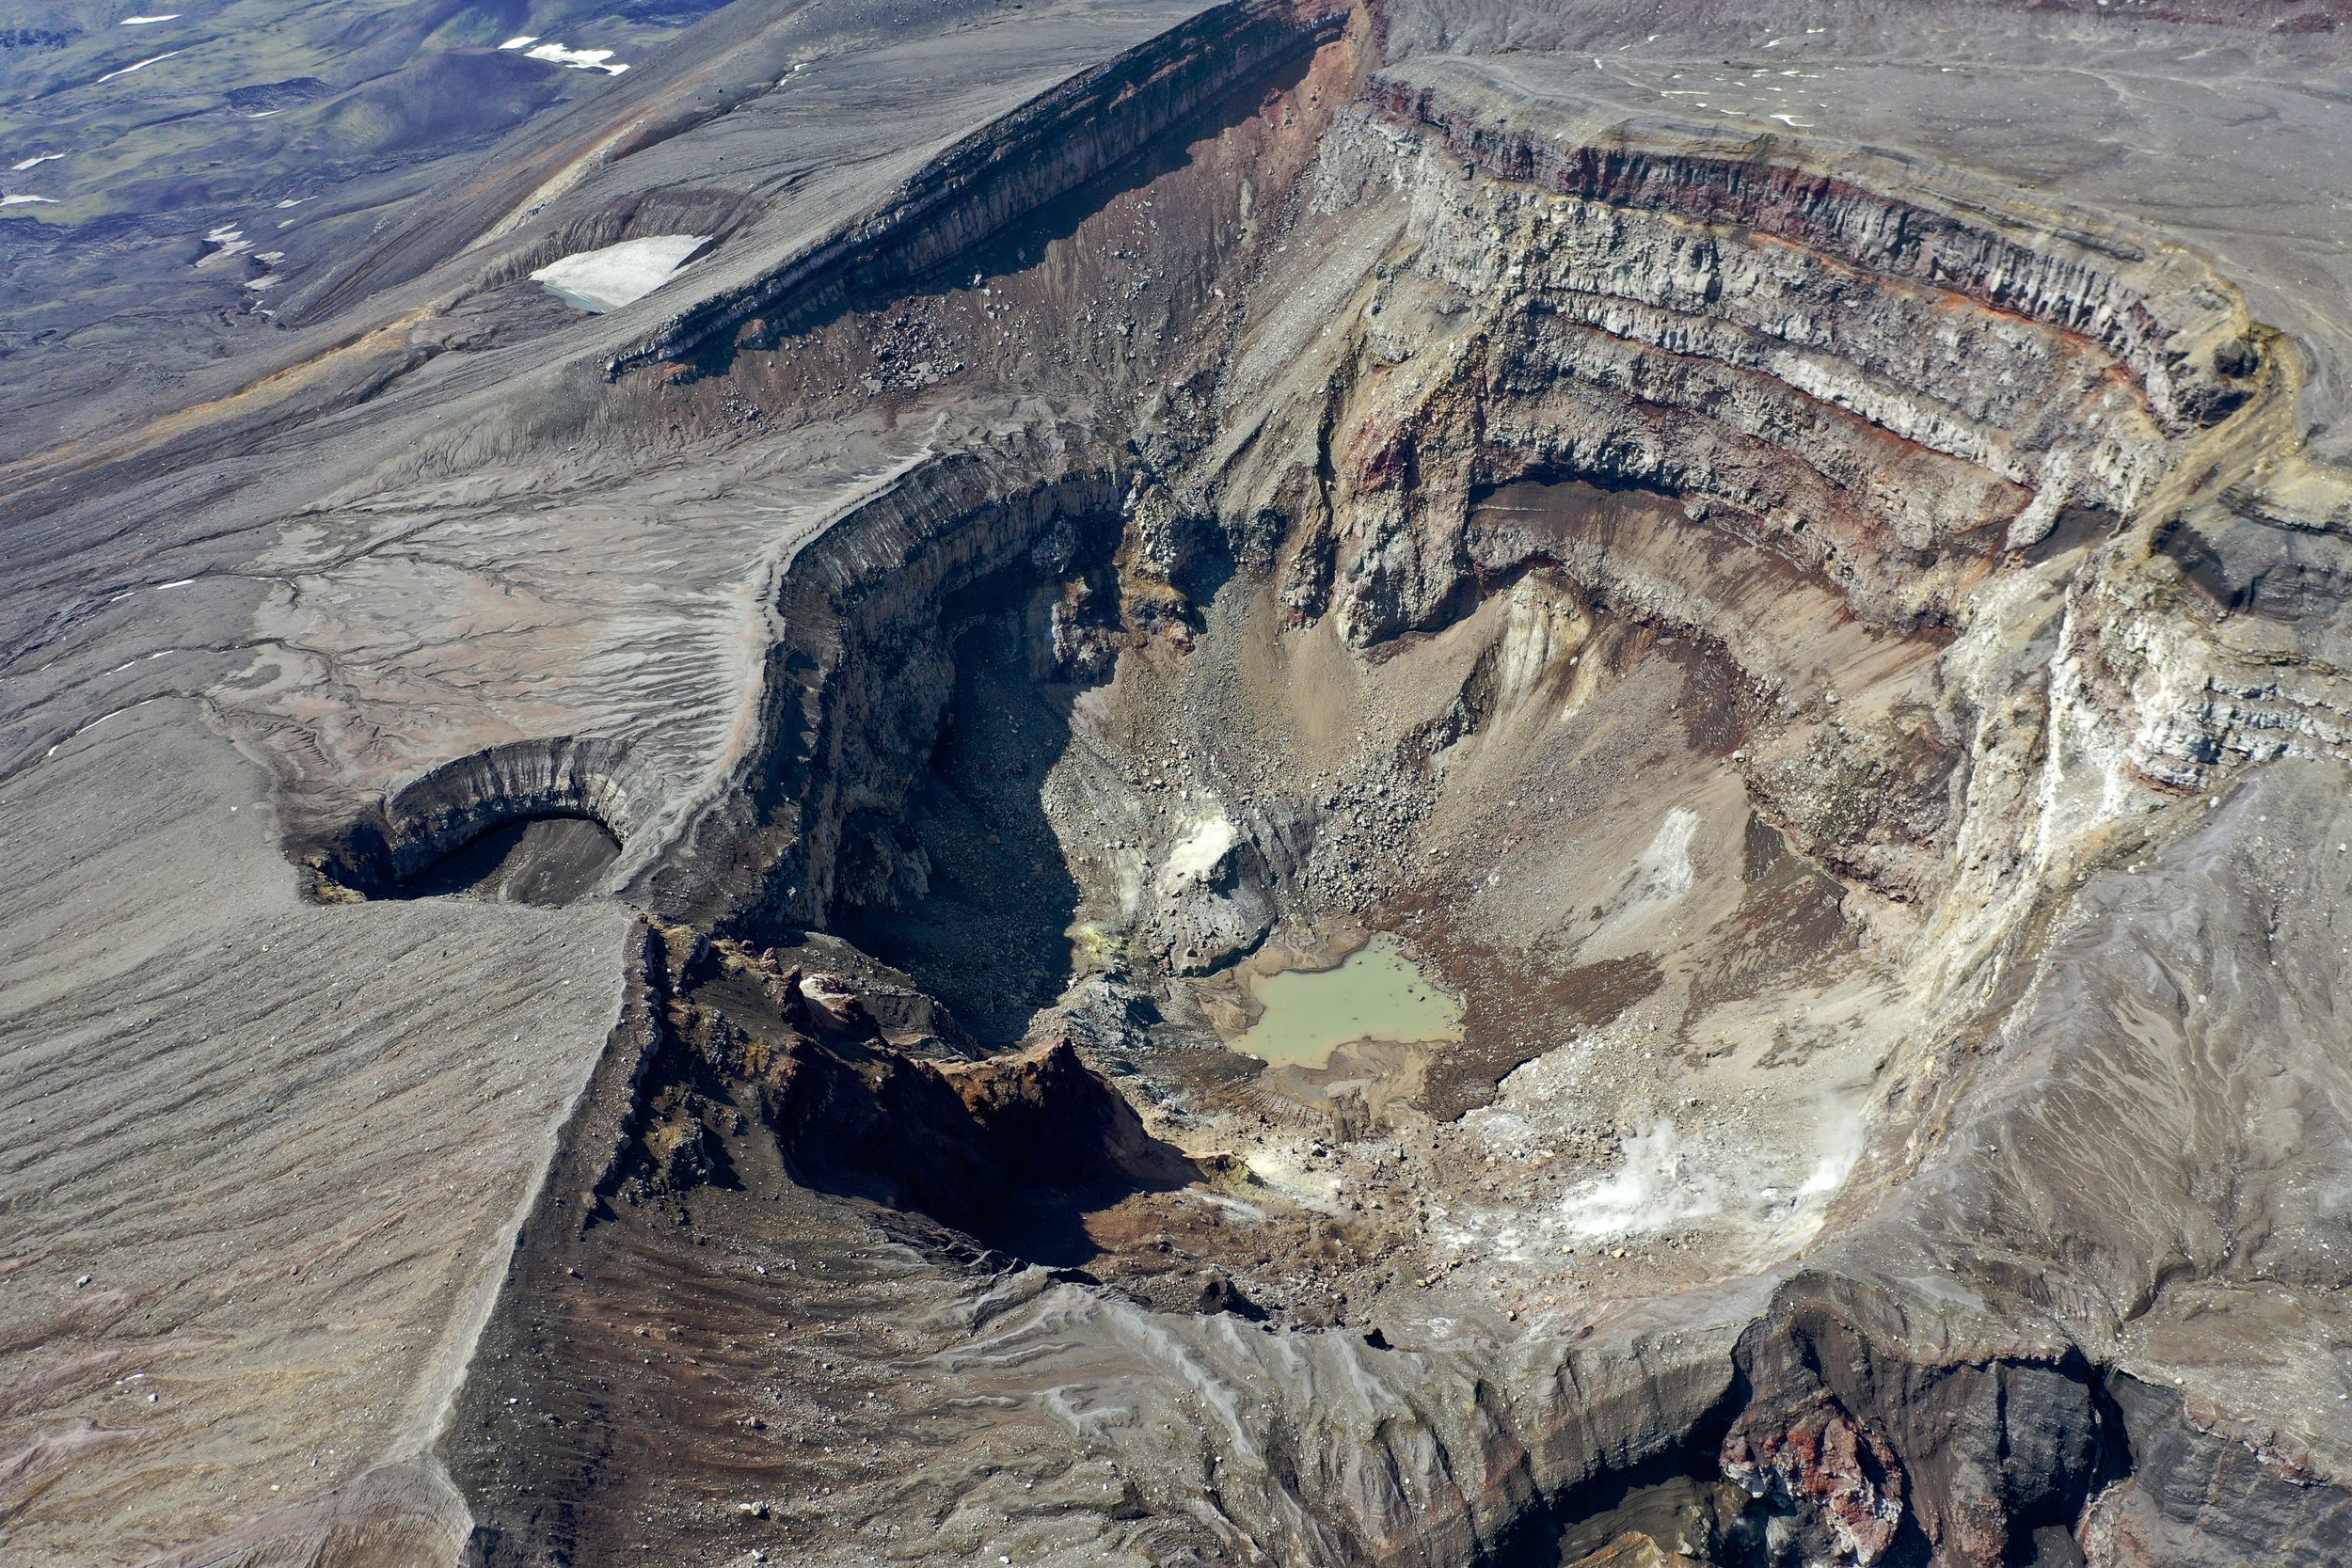 The active crater of the Gorely Volcano with the active gas vent on the lower right side. The gas vent has a temperature of 900C. The activity began in 2010 and is still ongoing. The drone photo by Evgeny Androssov.